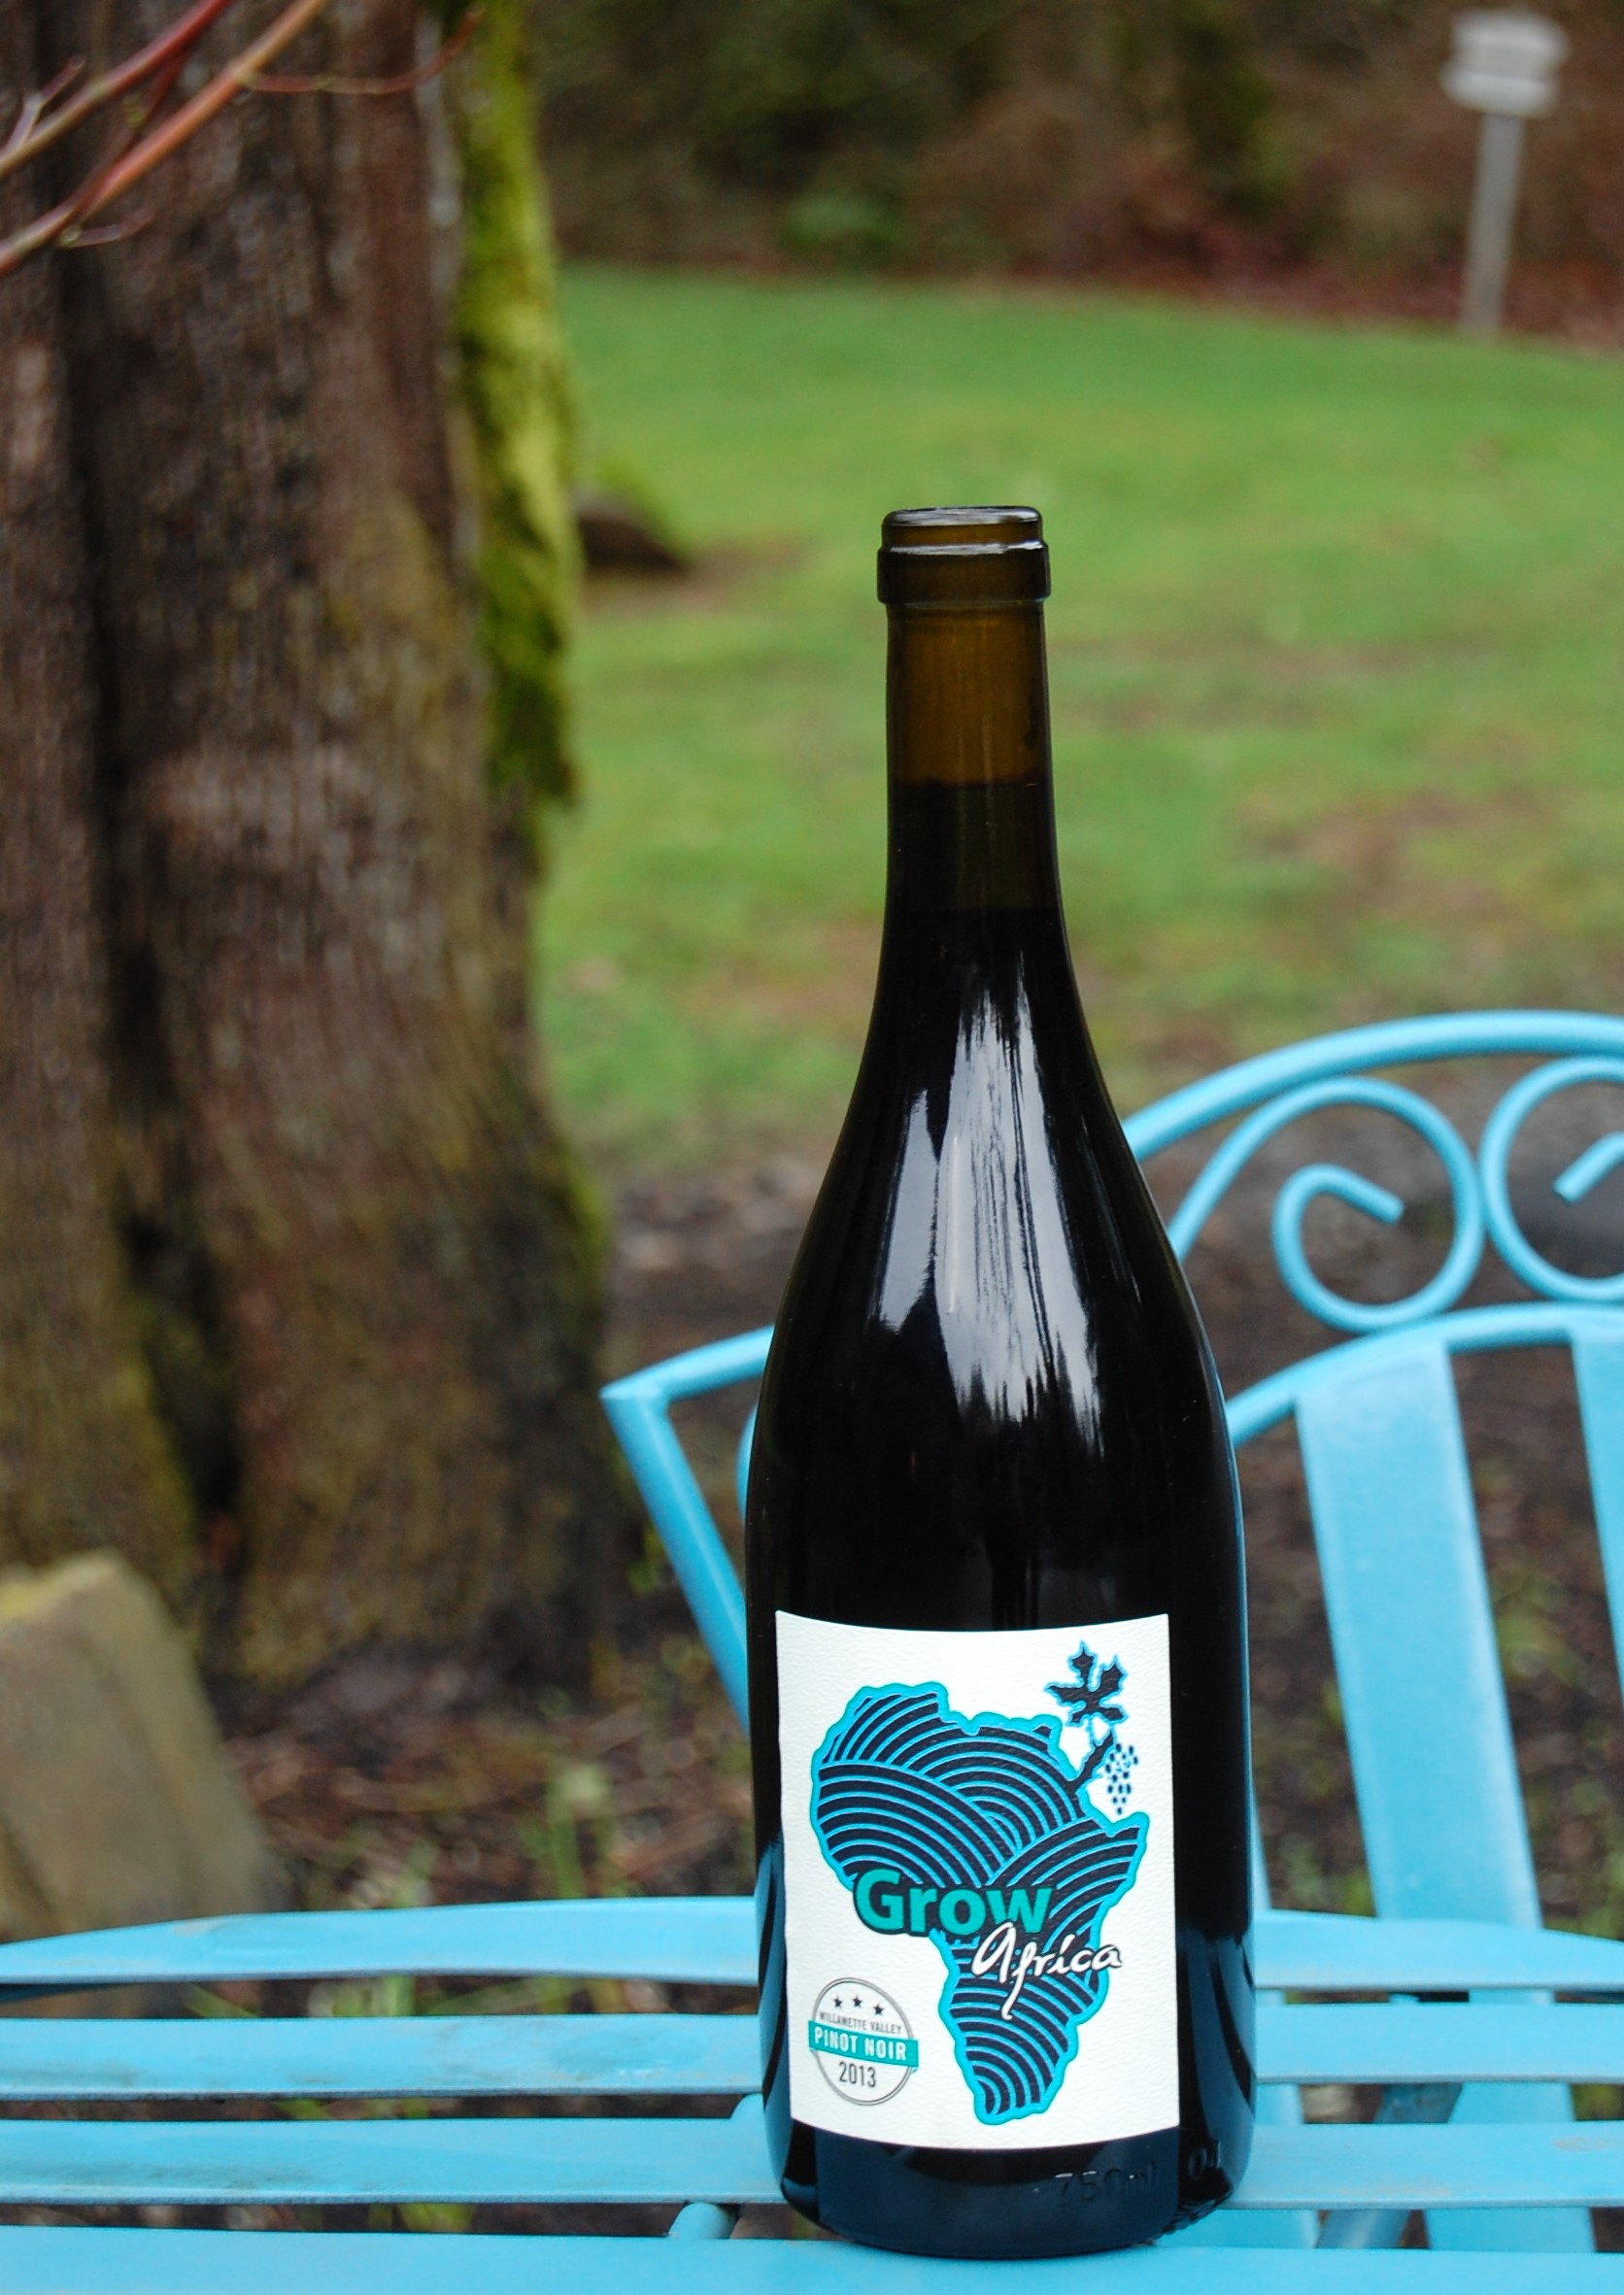 Every purchase of 2013 Grow Africa Pinot Noir supports the work of Grow International in West Africa. Grow International